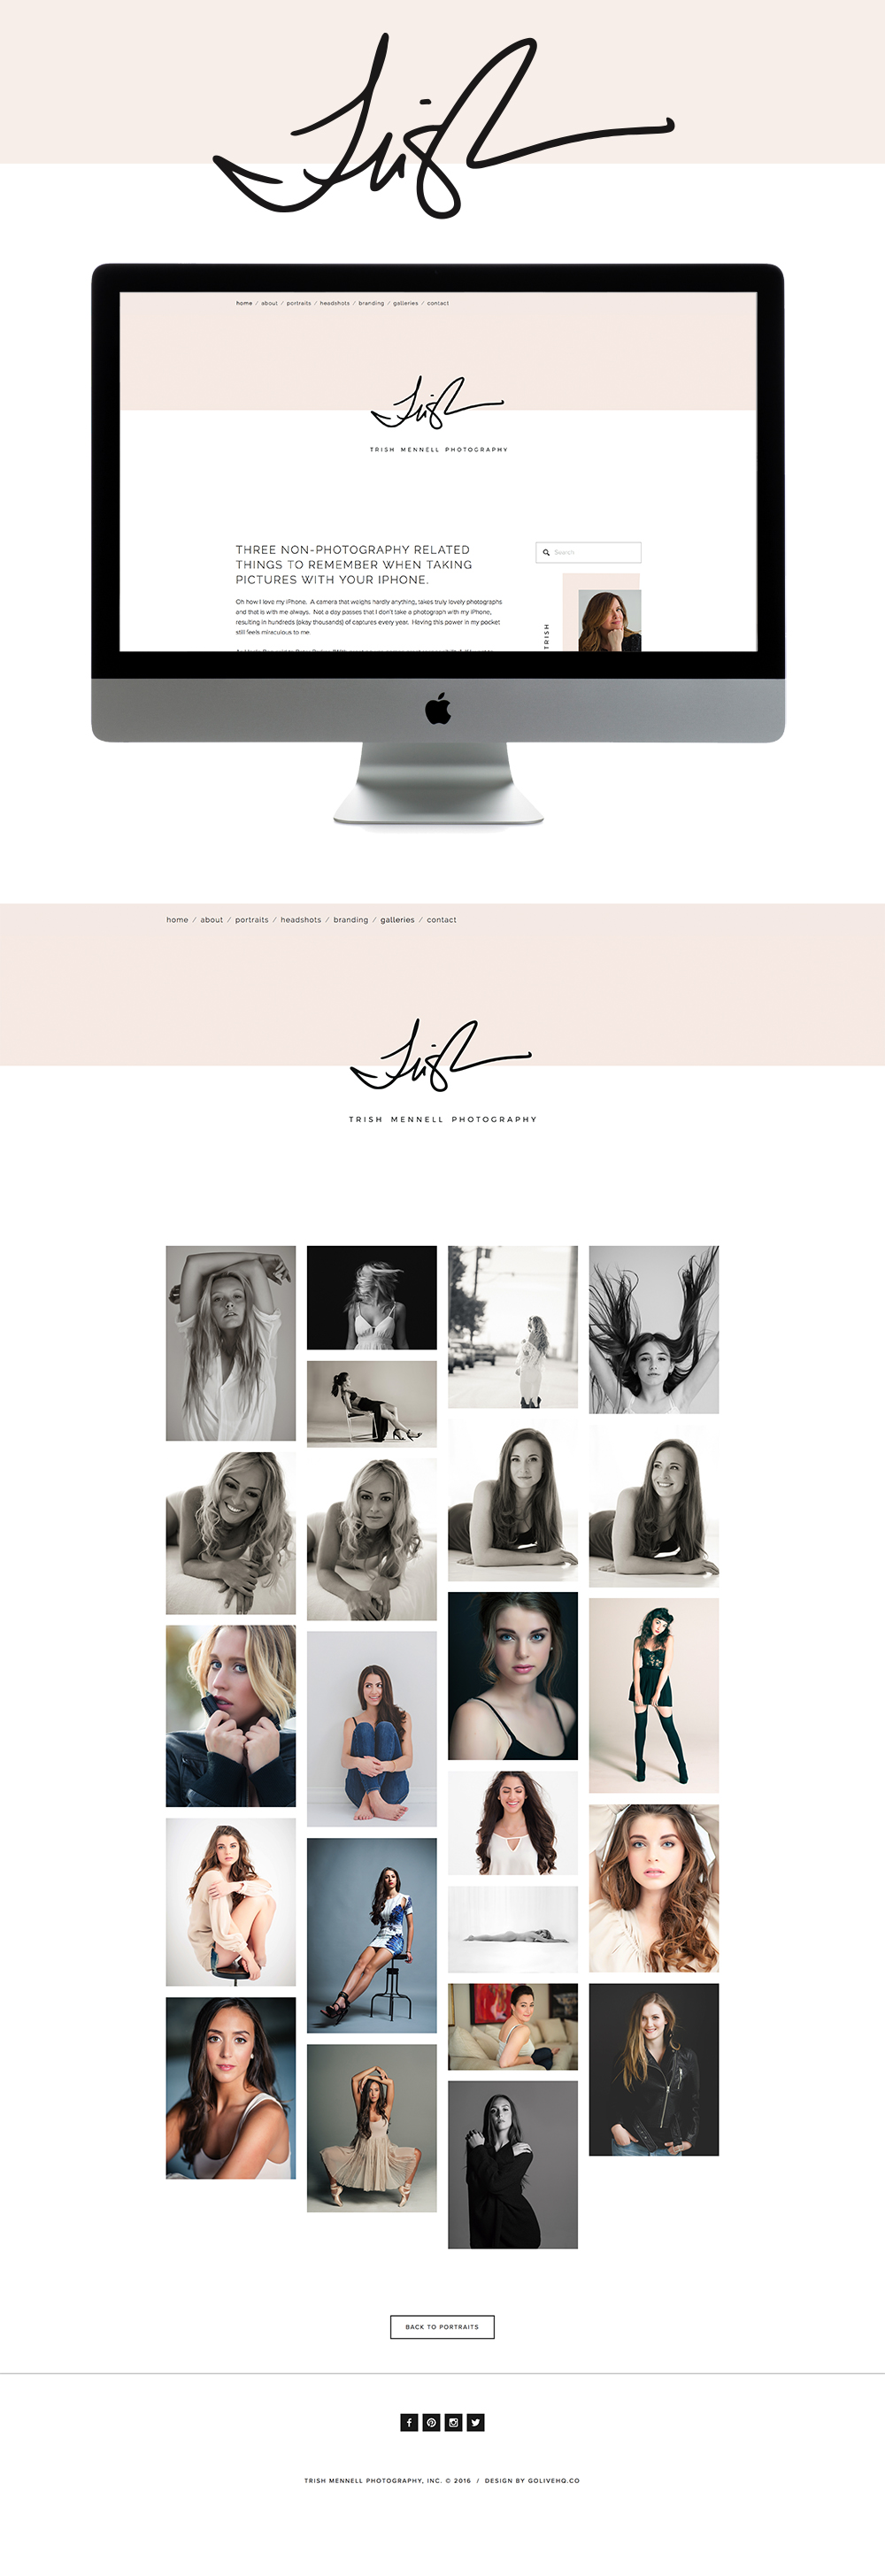 Stylish clean squarespace website design | designed by: golivehq.co